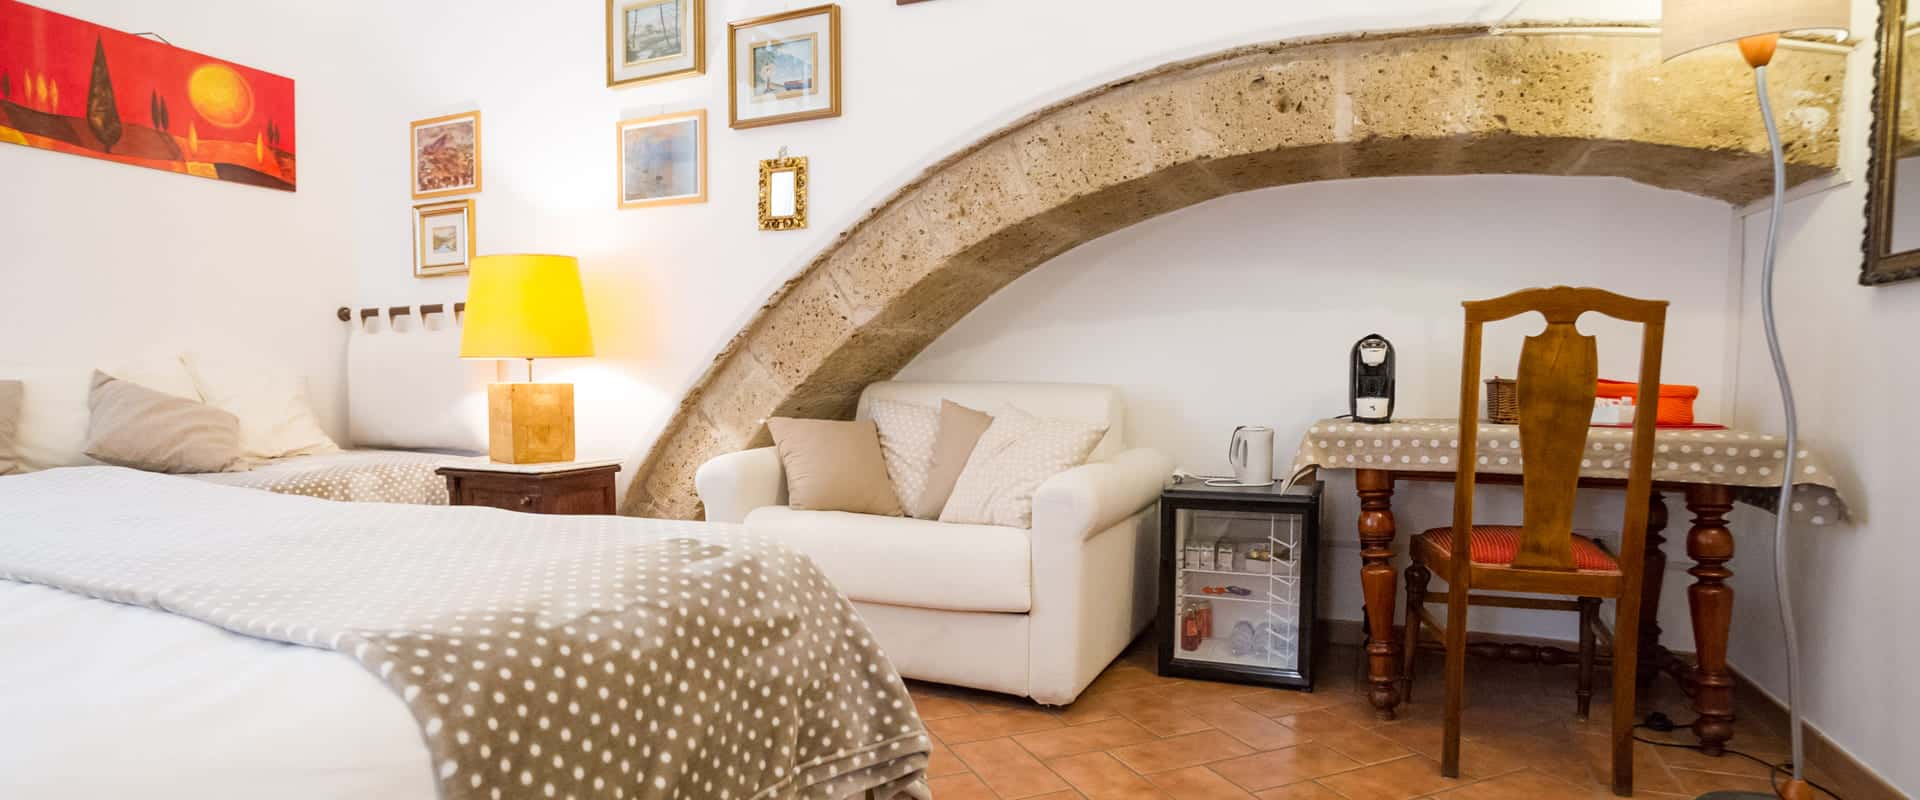 bed breakfast orvieto